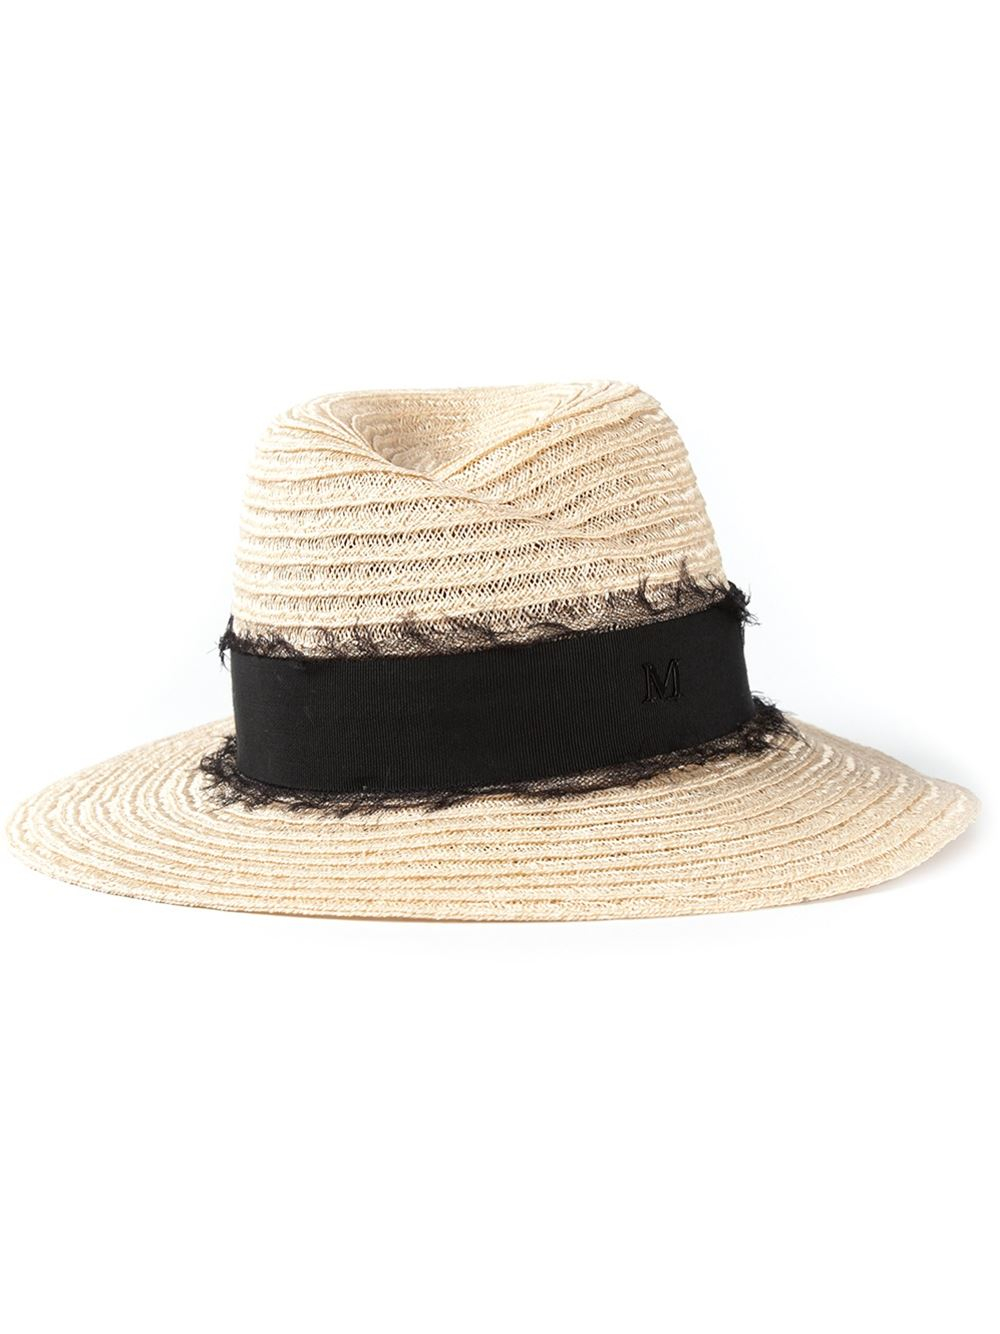 Maison michel 39 virgine 39 trilby hat in beige nude for Maison michel